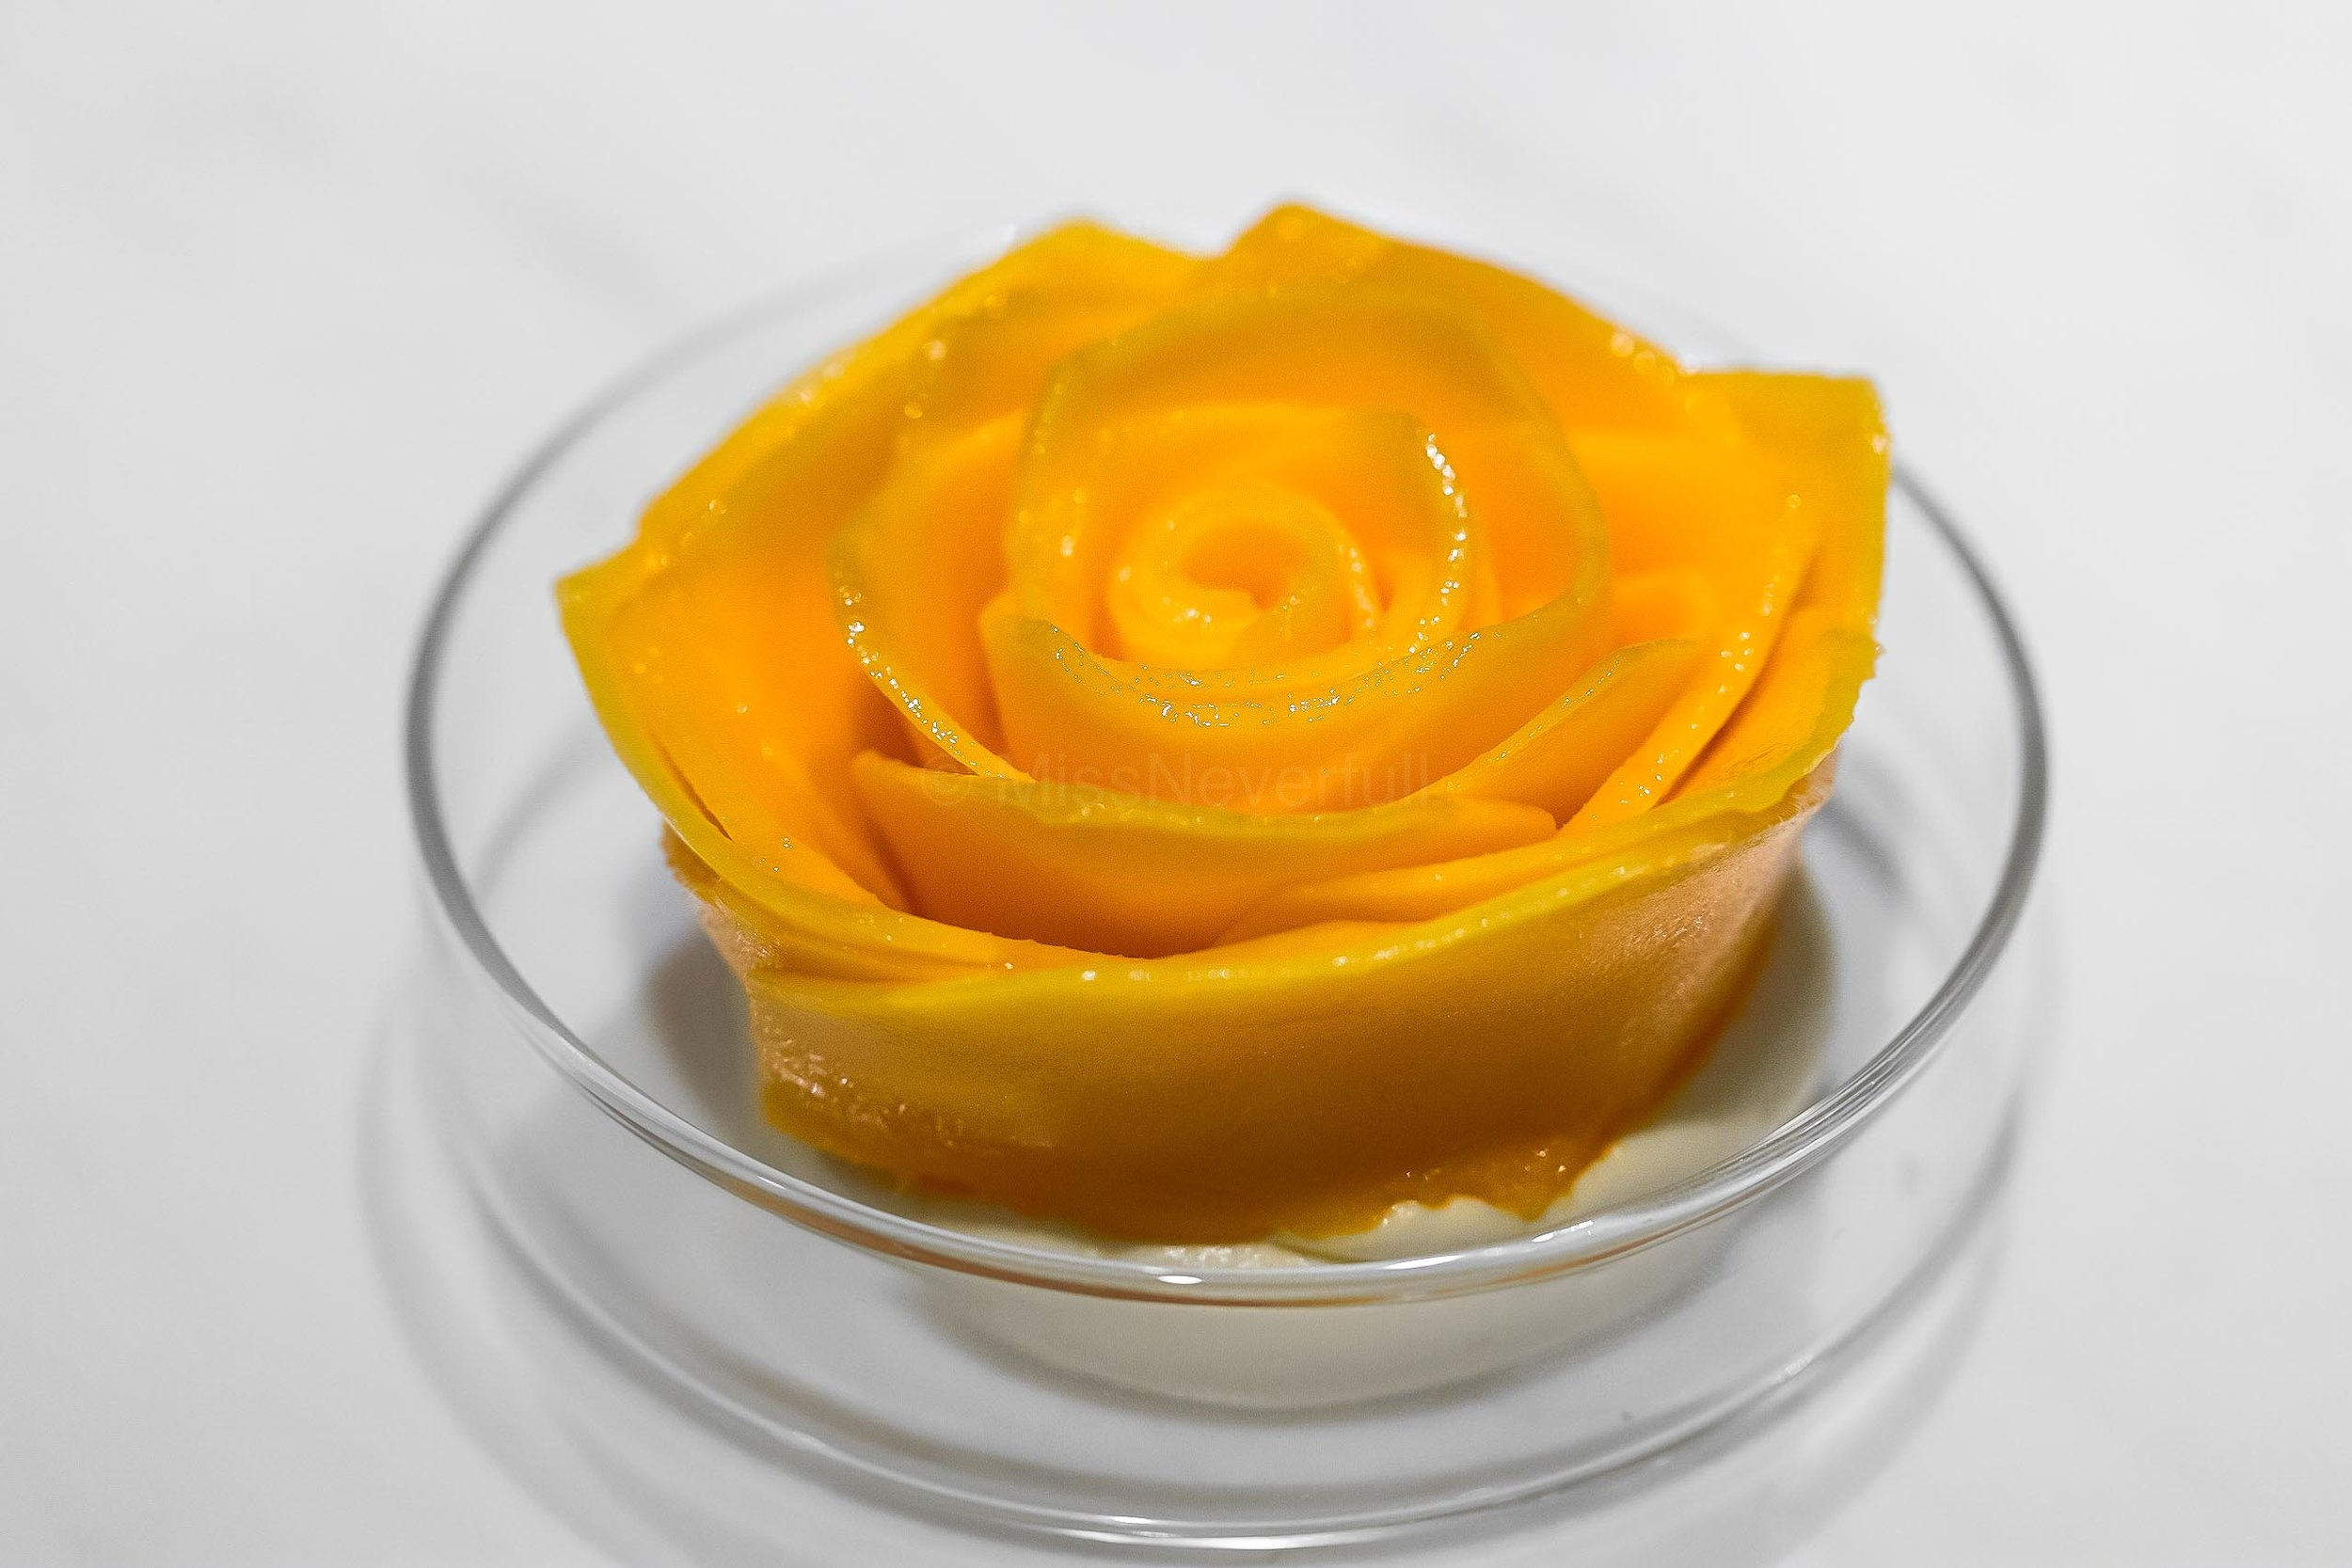 6.  The Signature Mango 'rose' tart マンゴーの蔷薇